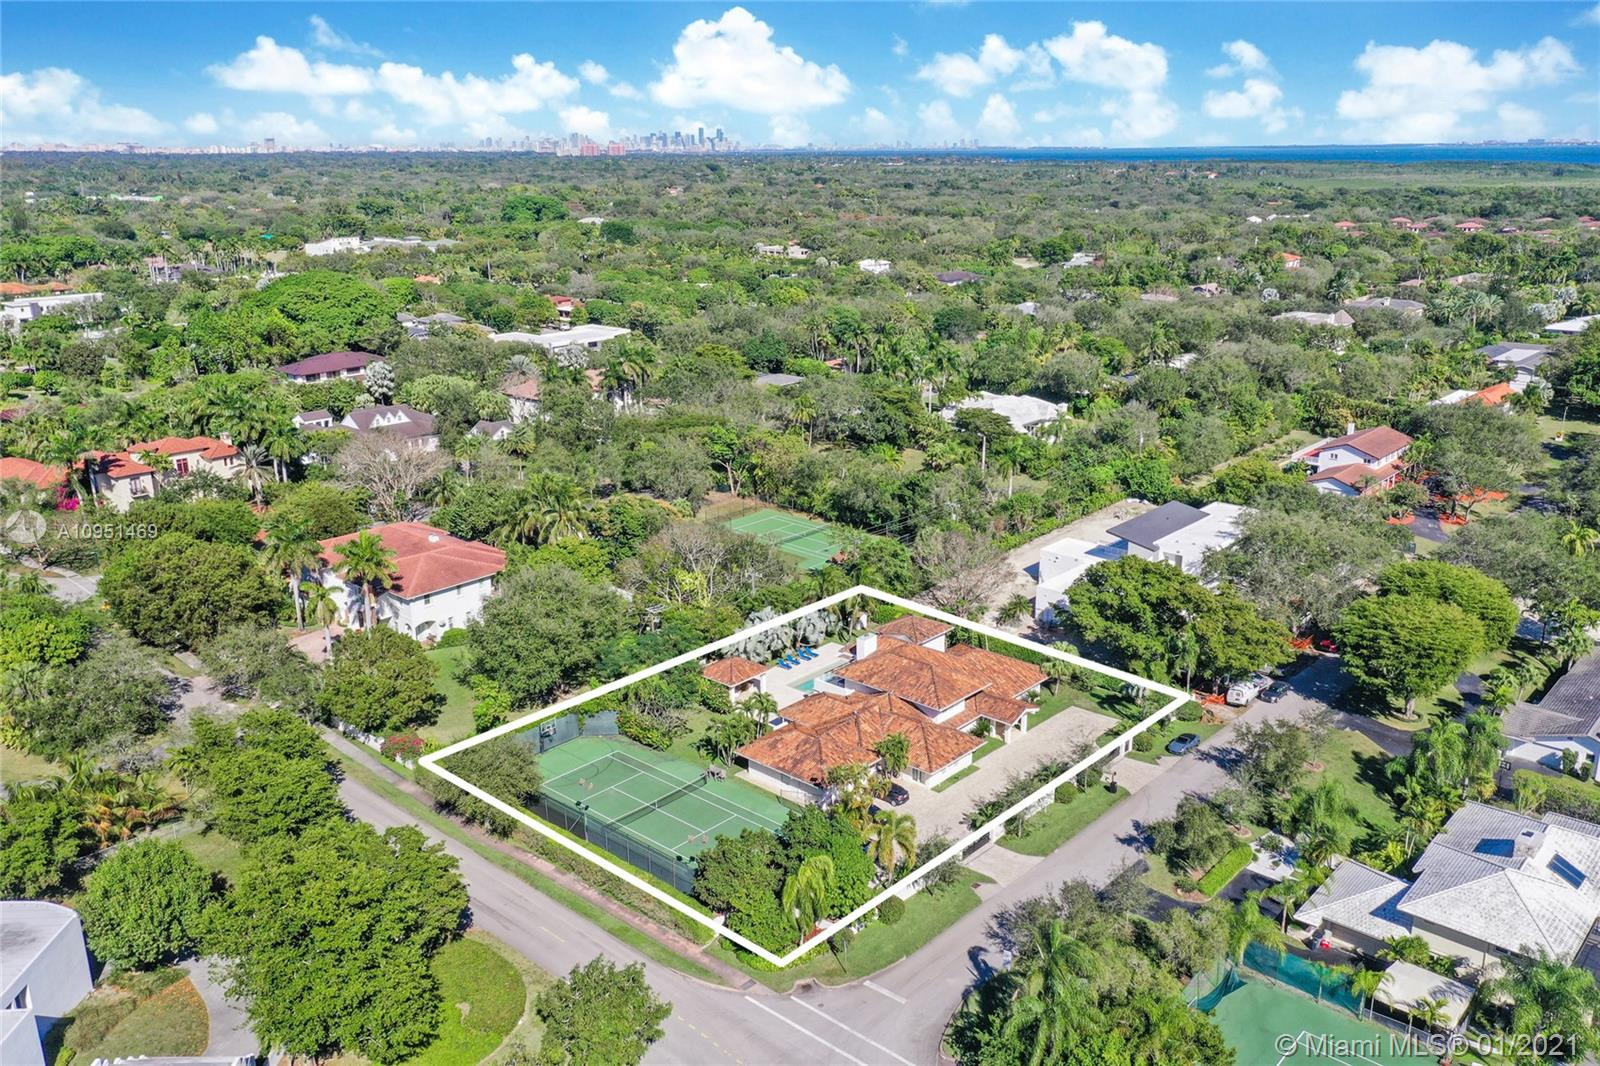 Details for 5941 116th St, Coral Gables, FL 33156